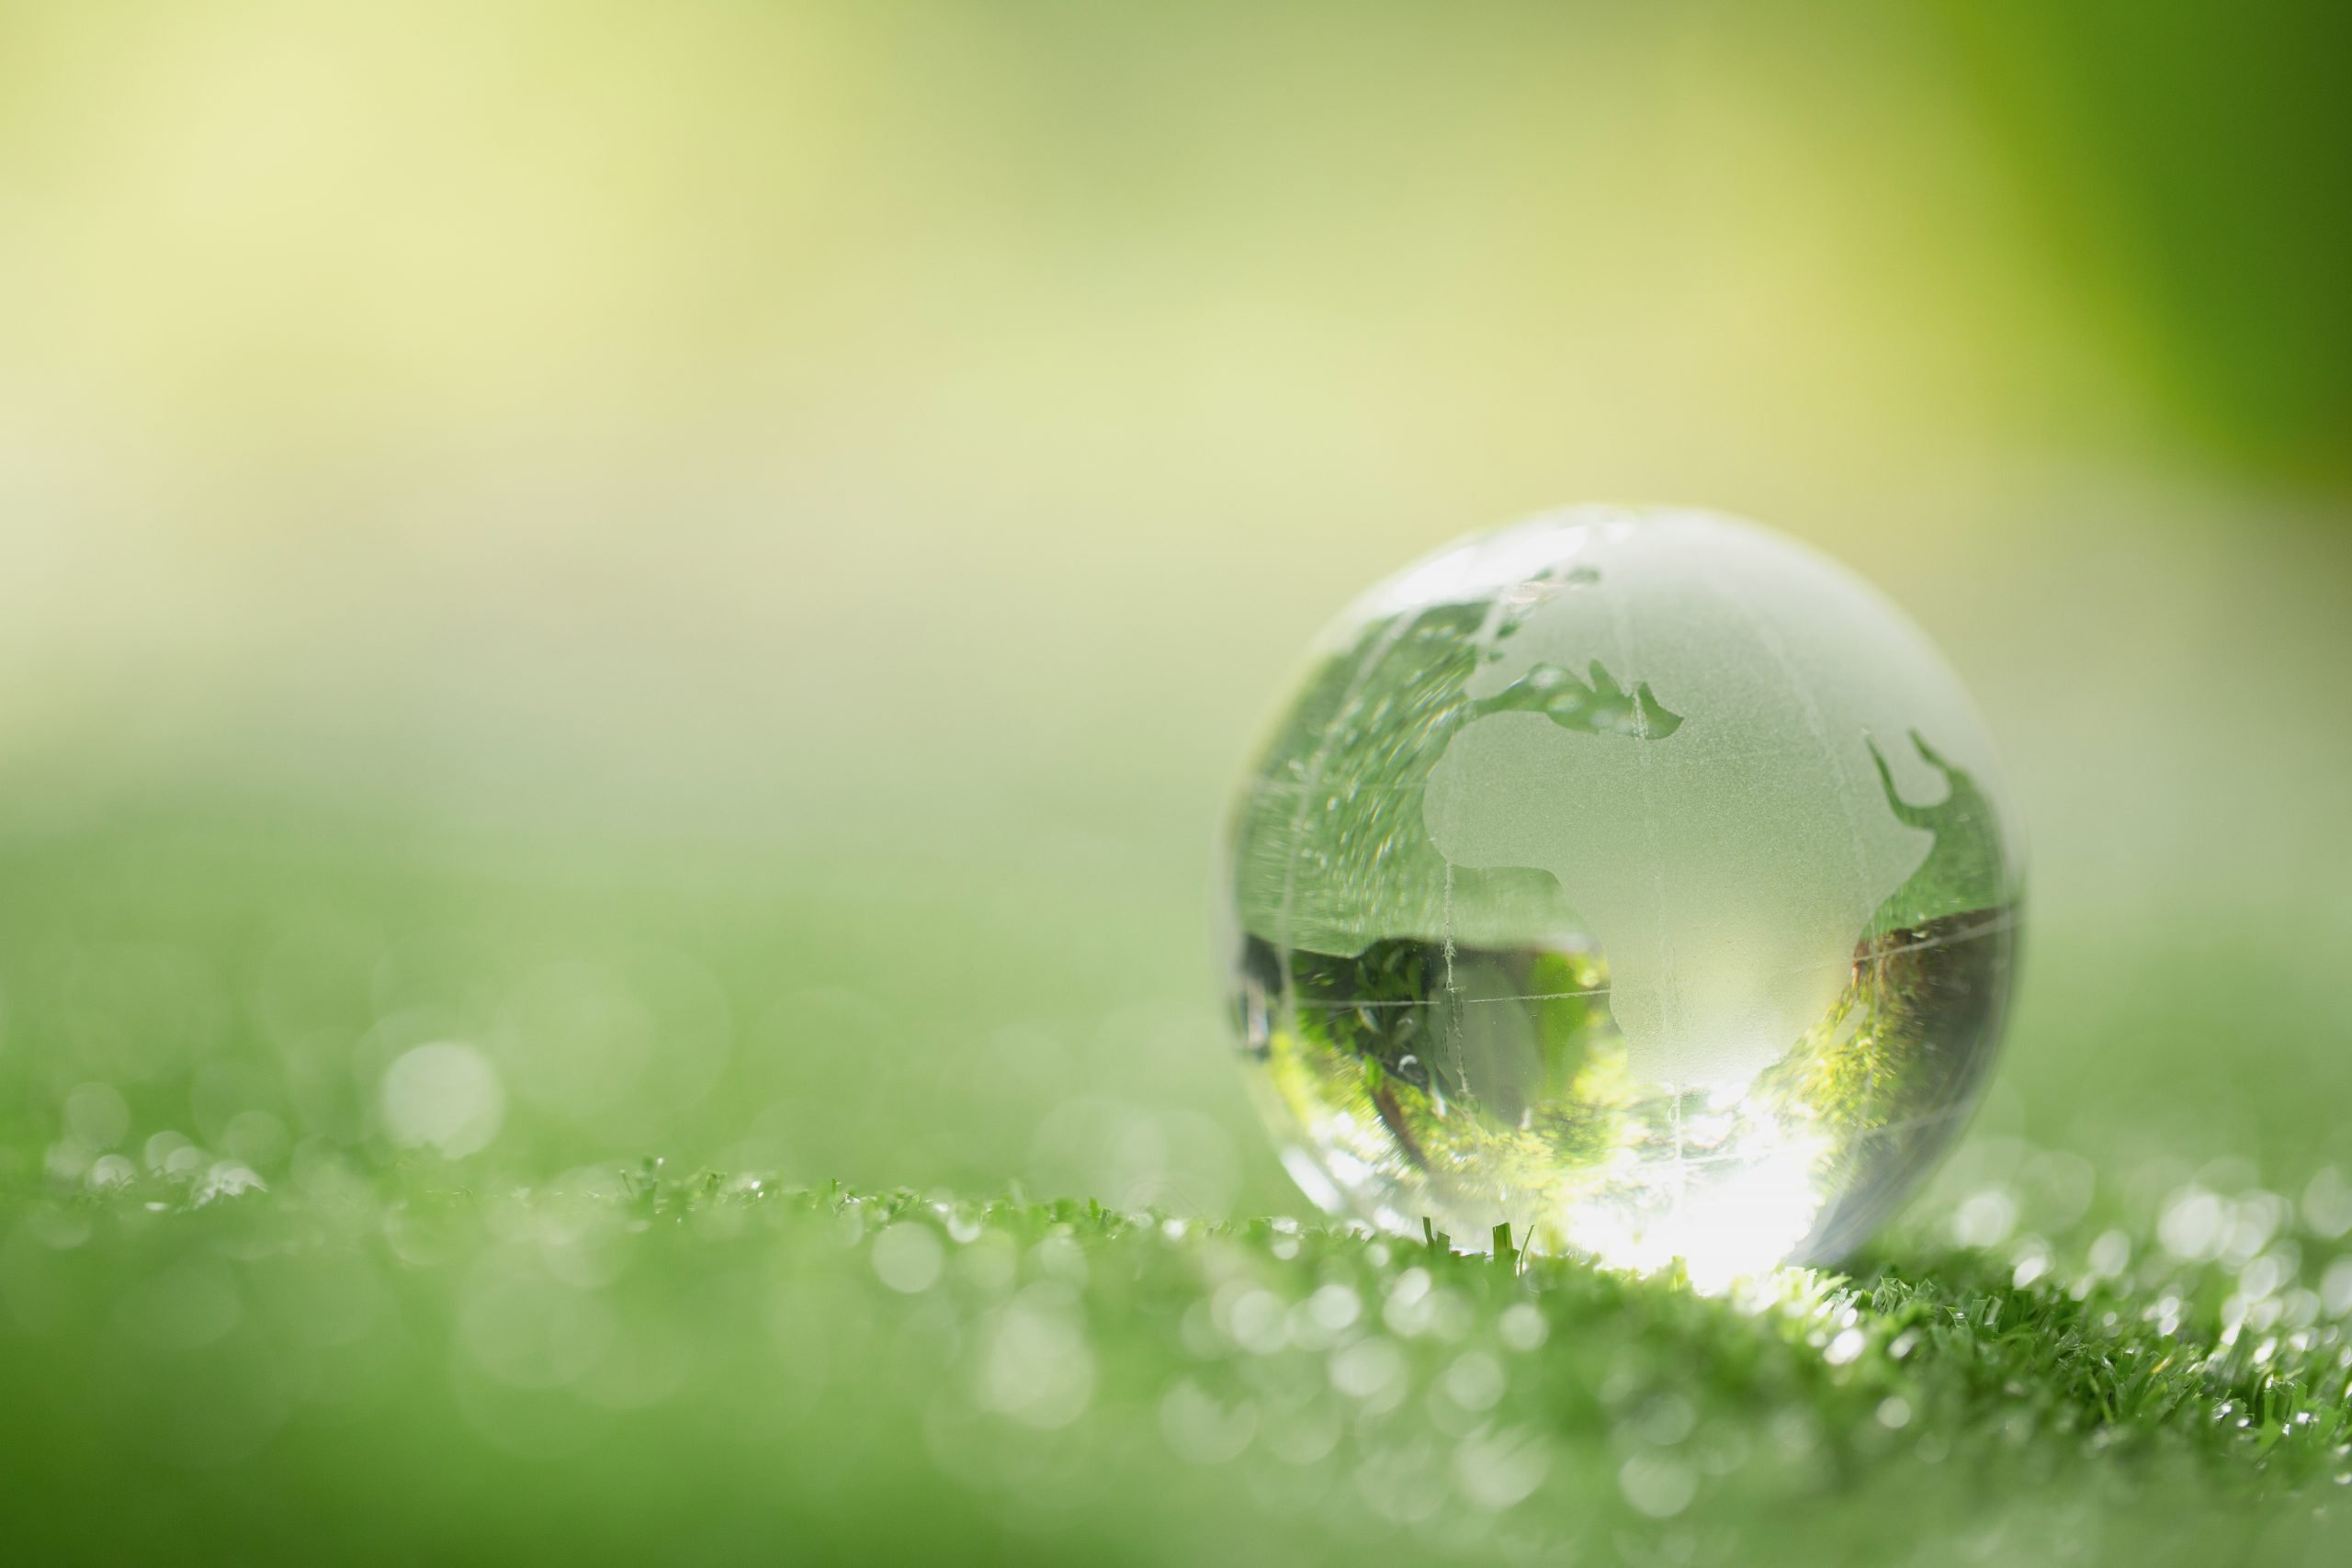 Close up of crystal globe resting on grass in a forest indicating global sustainability